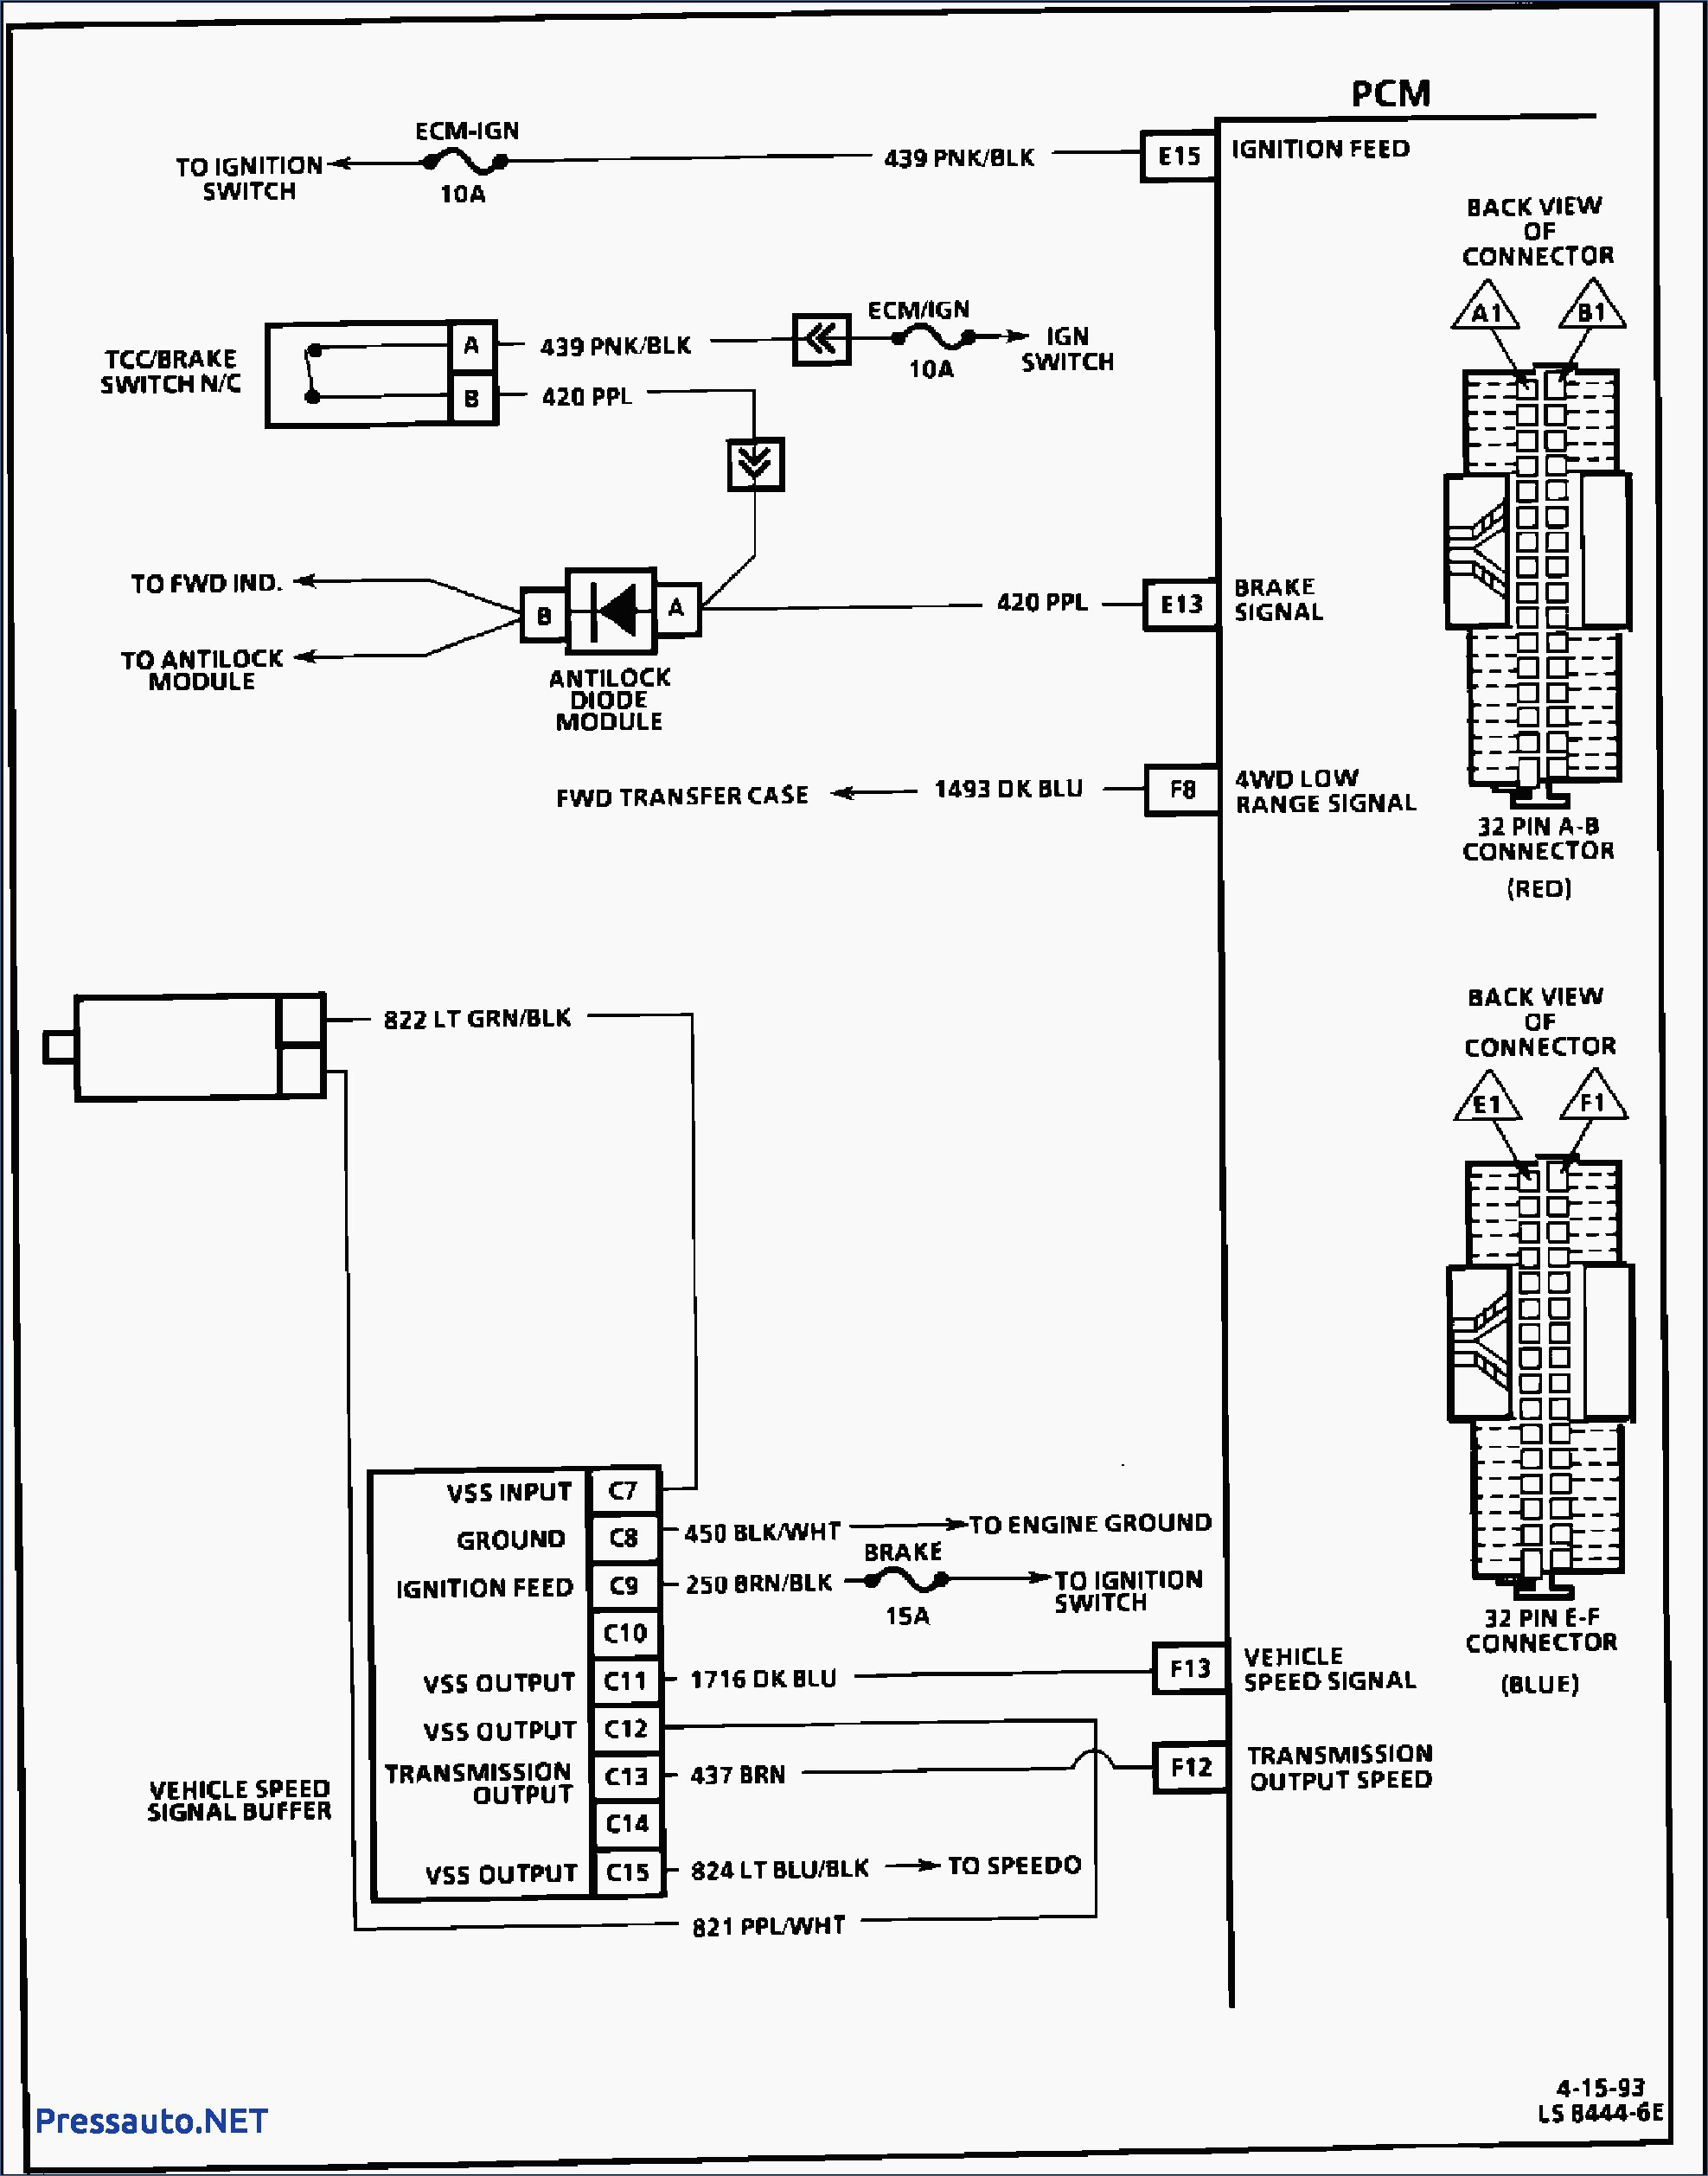 hight resolution of 1992 4l80e wiring diagram wiring diagram1992 4l80e wiring diagram wiring diagram database4l80e wiring diagram 20 10